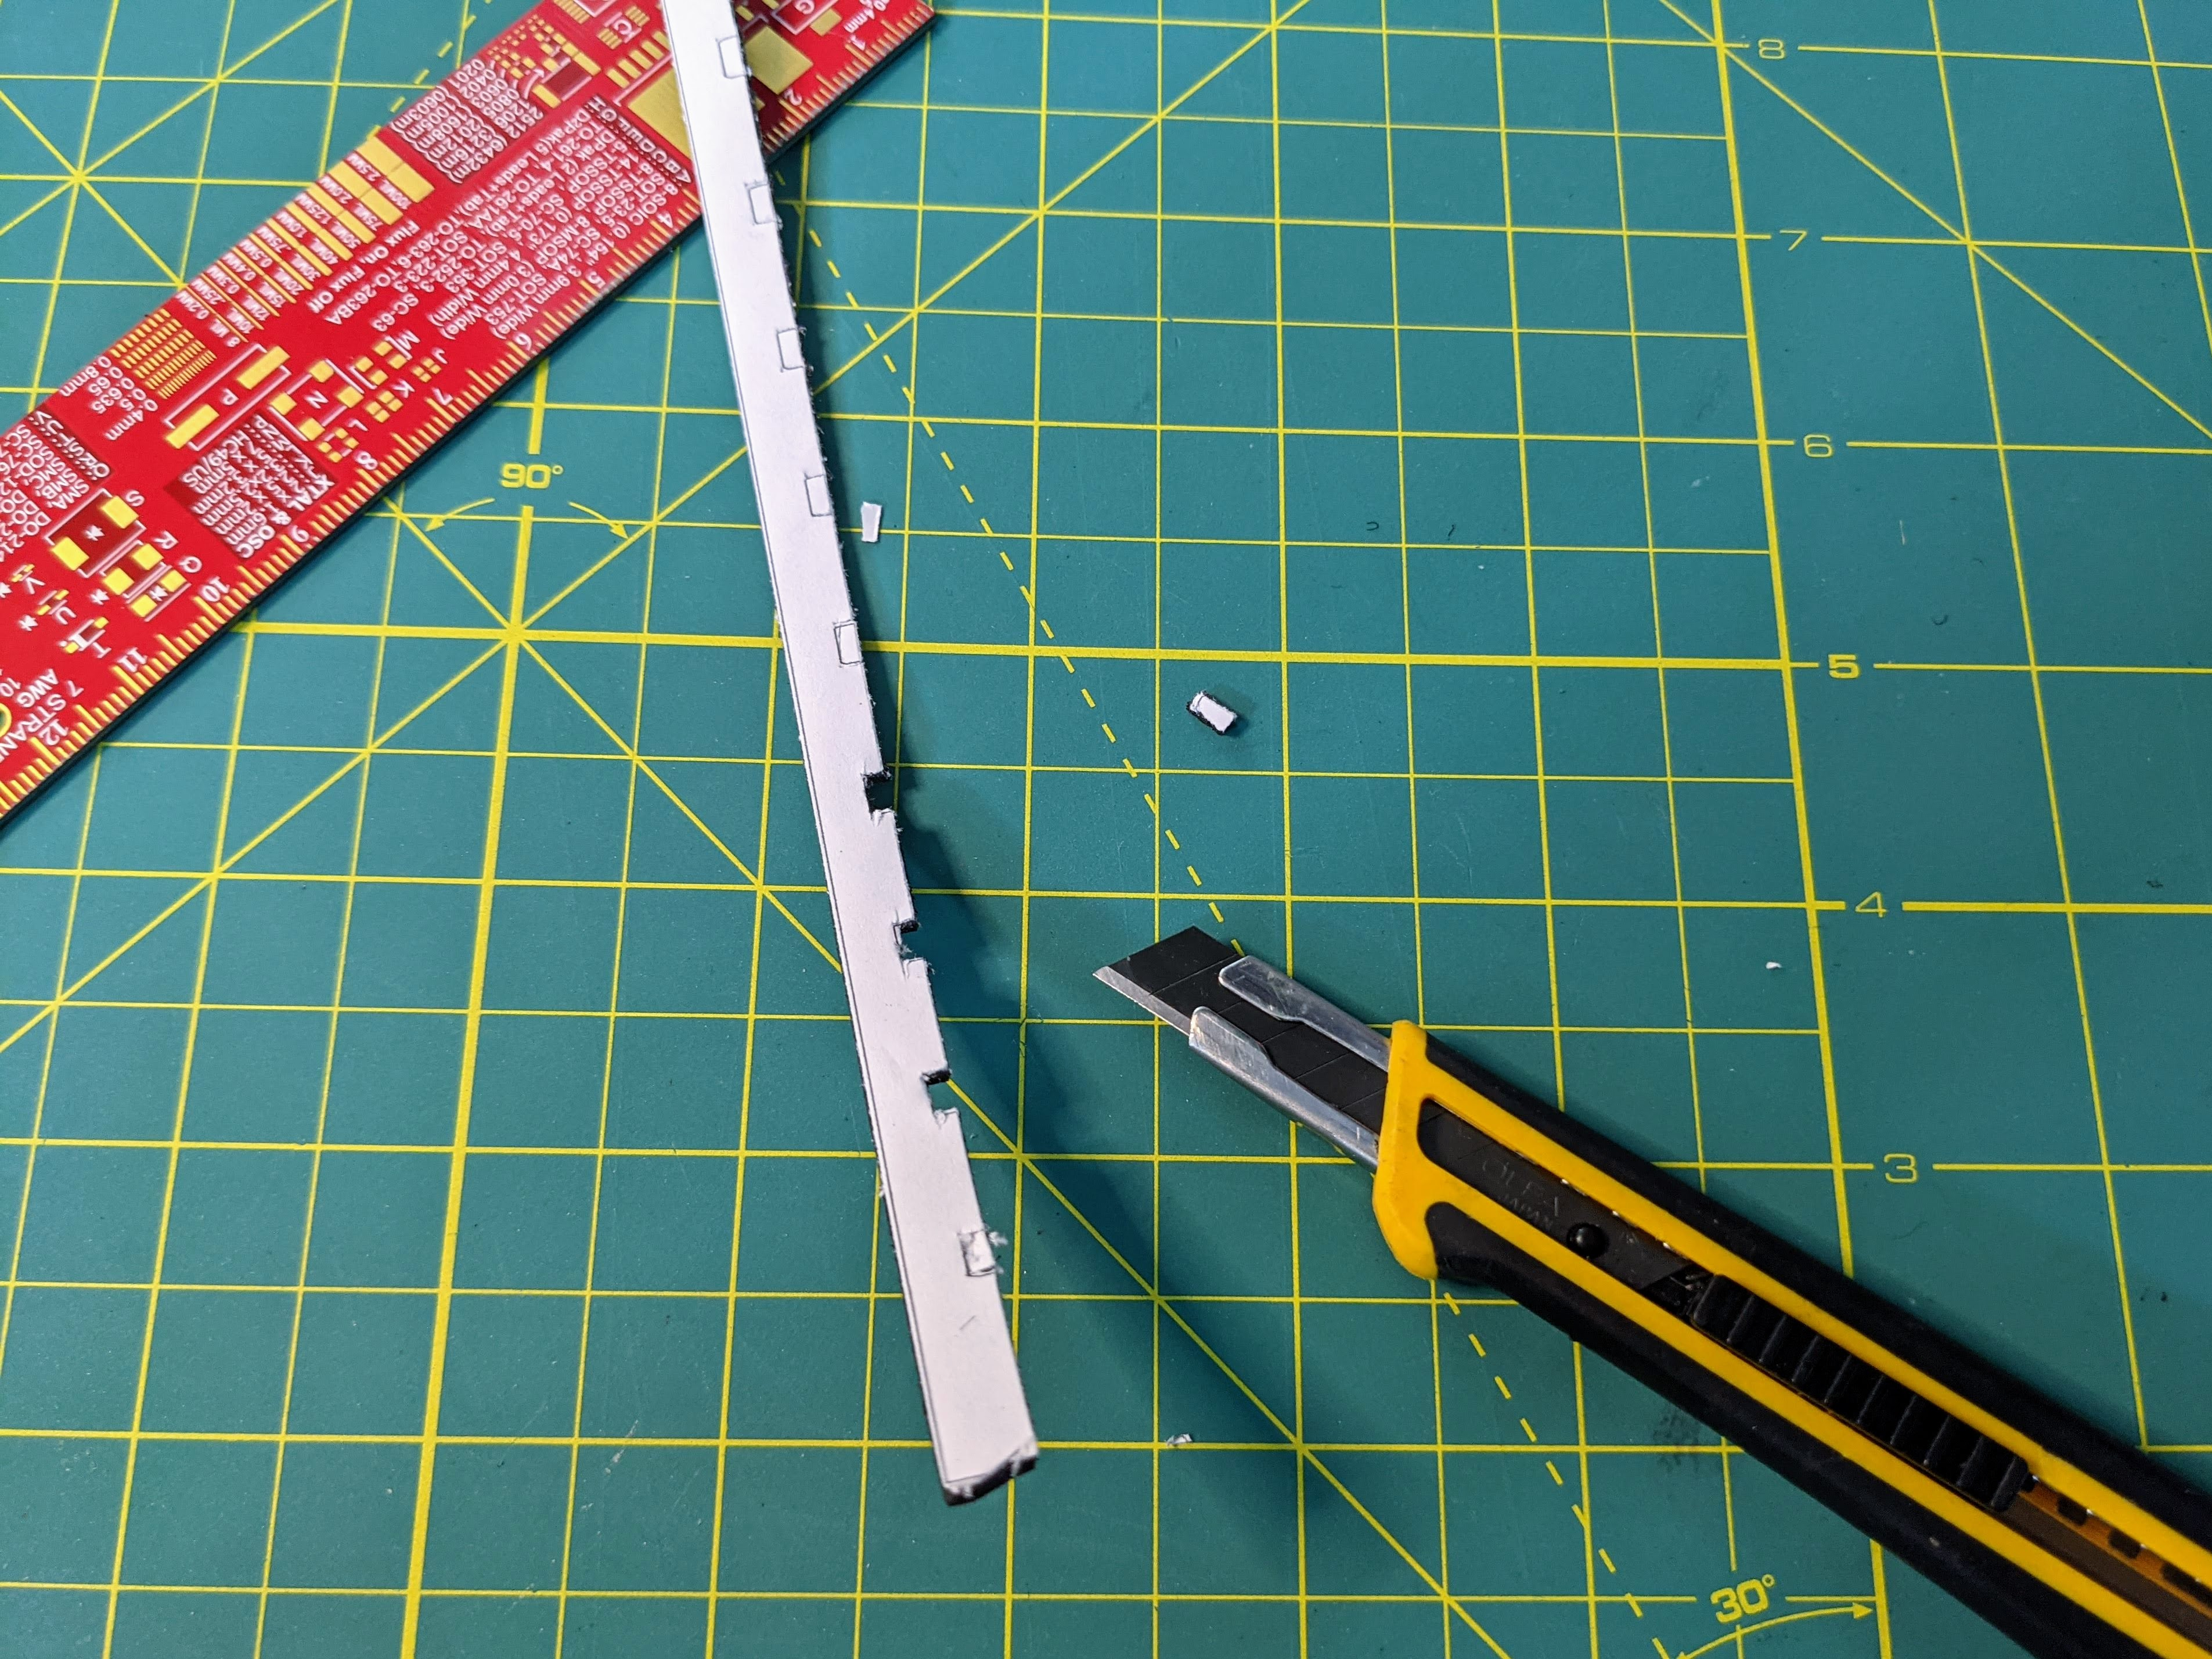 projects_led_strips_PXL_20210124_225635314.jpg